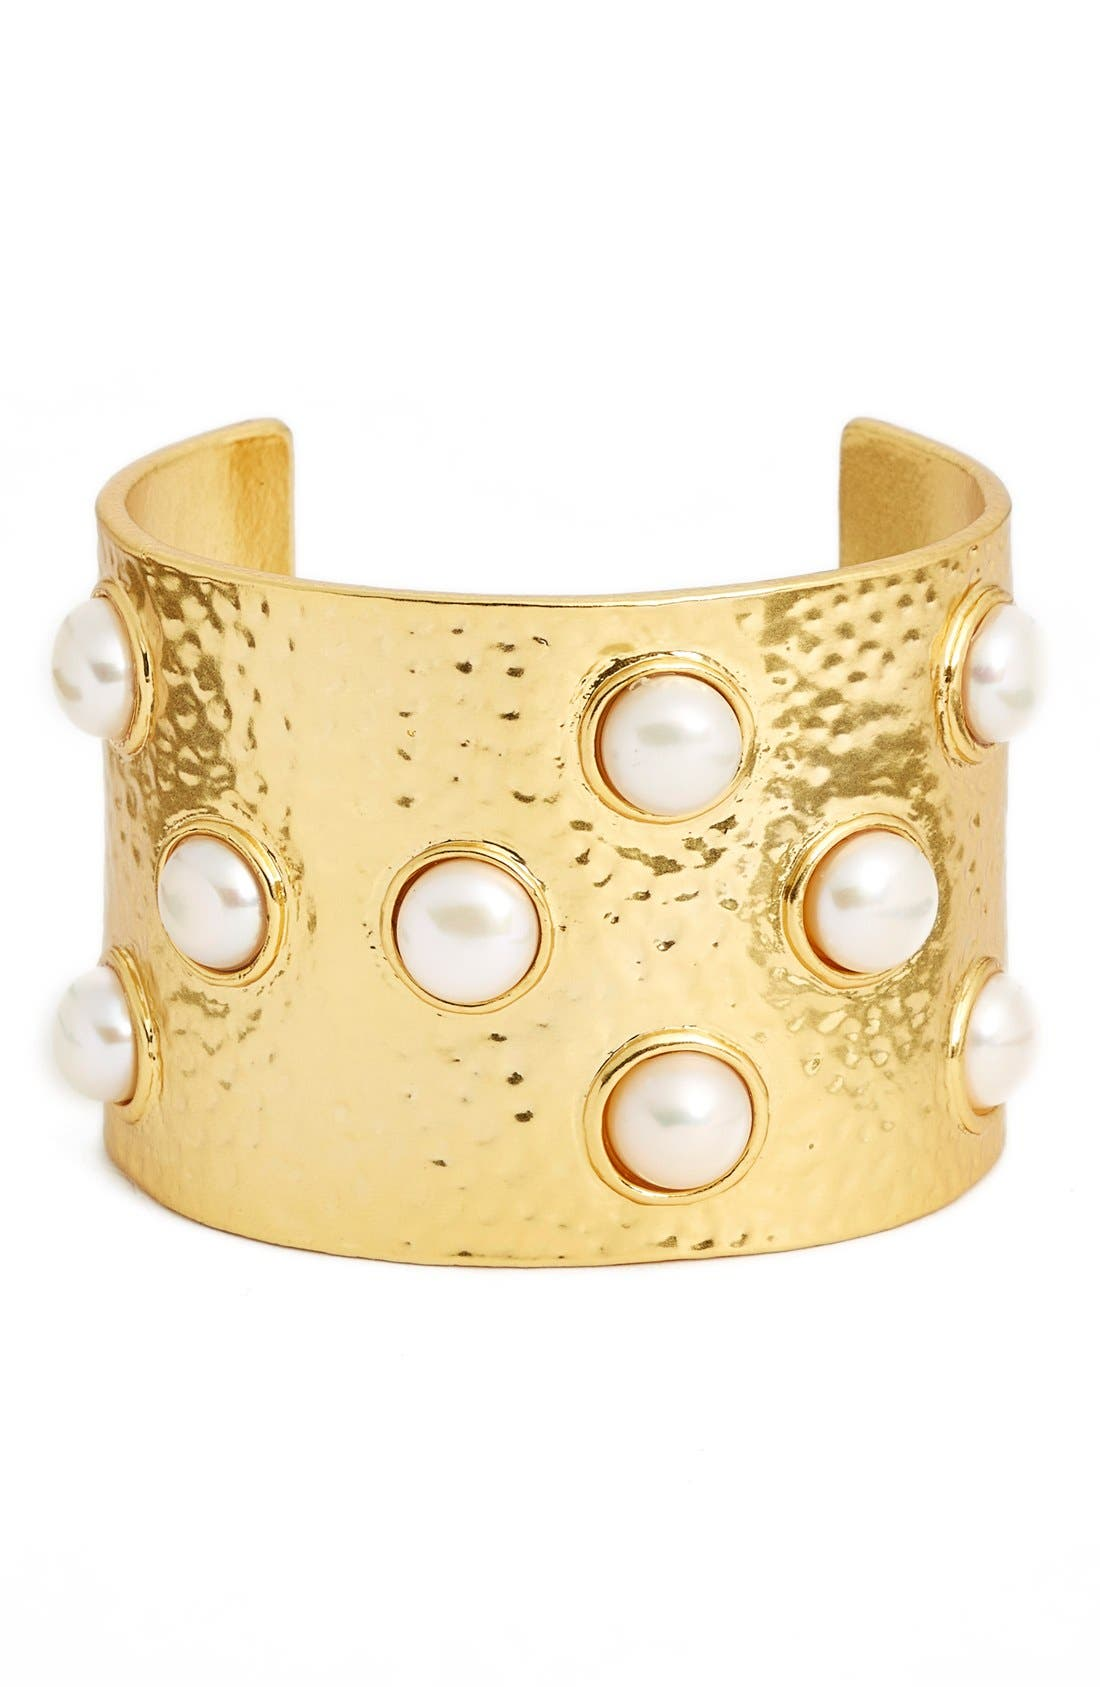 Hammered Imitation Pearl Cuff,                             Main thumbnail 1, color,                             Gold